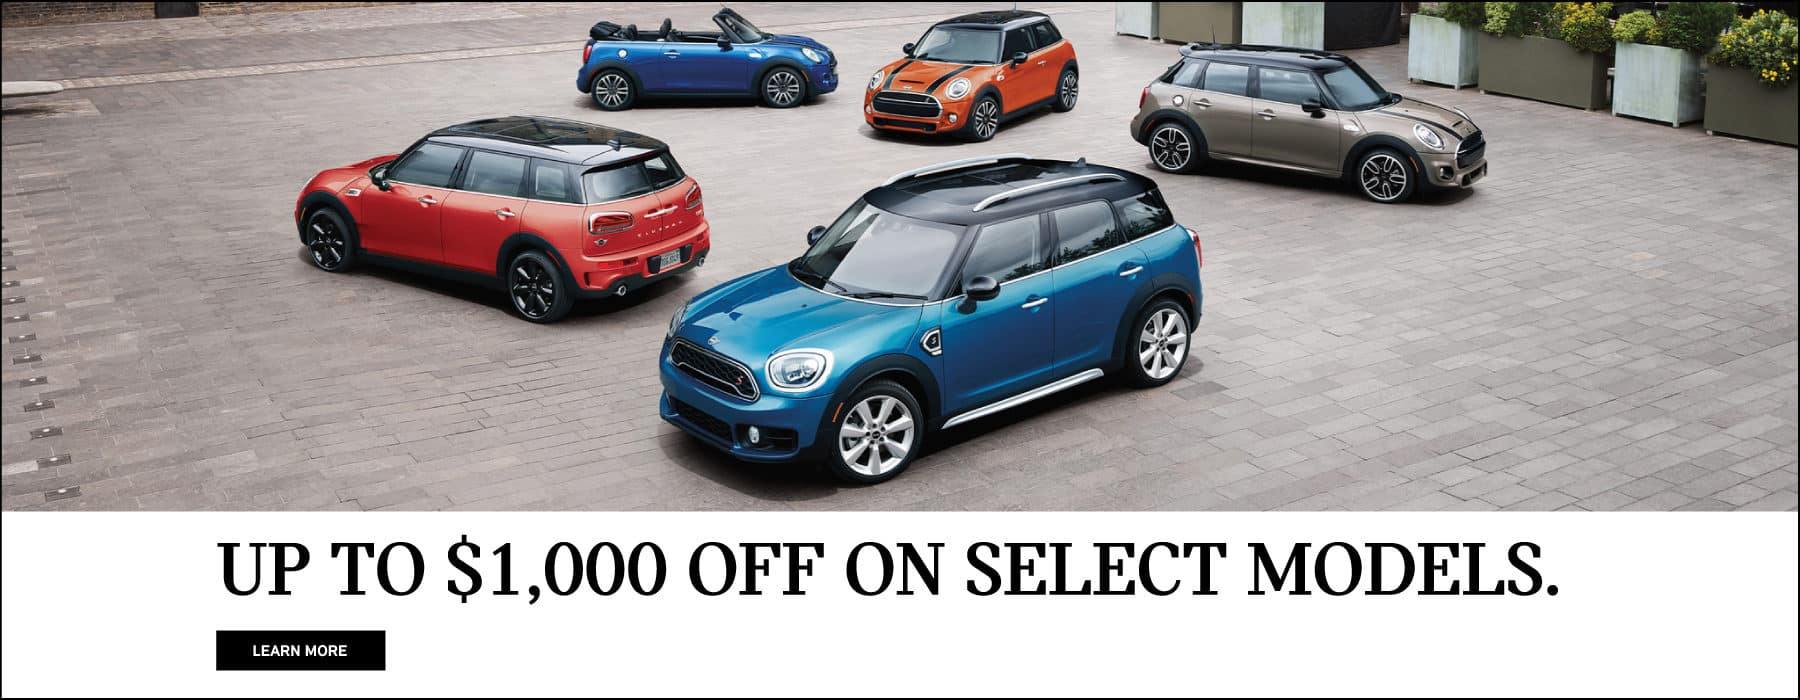 Up to $1,000 off on select models